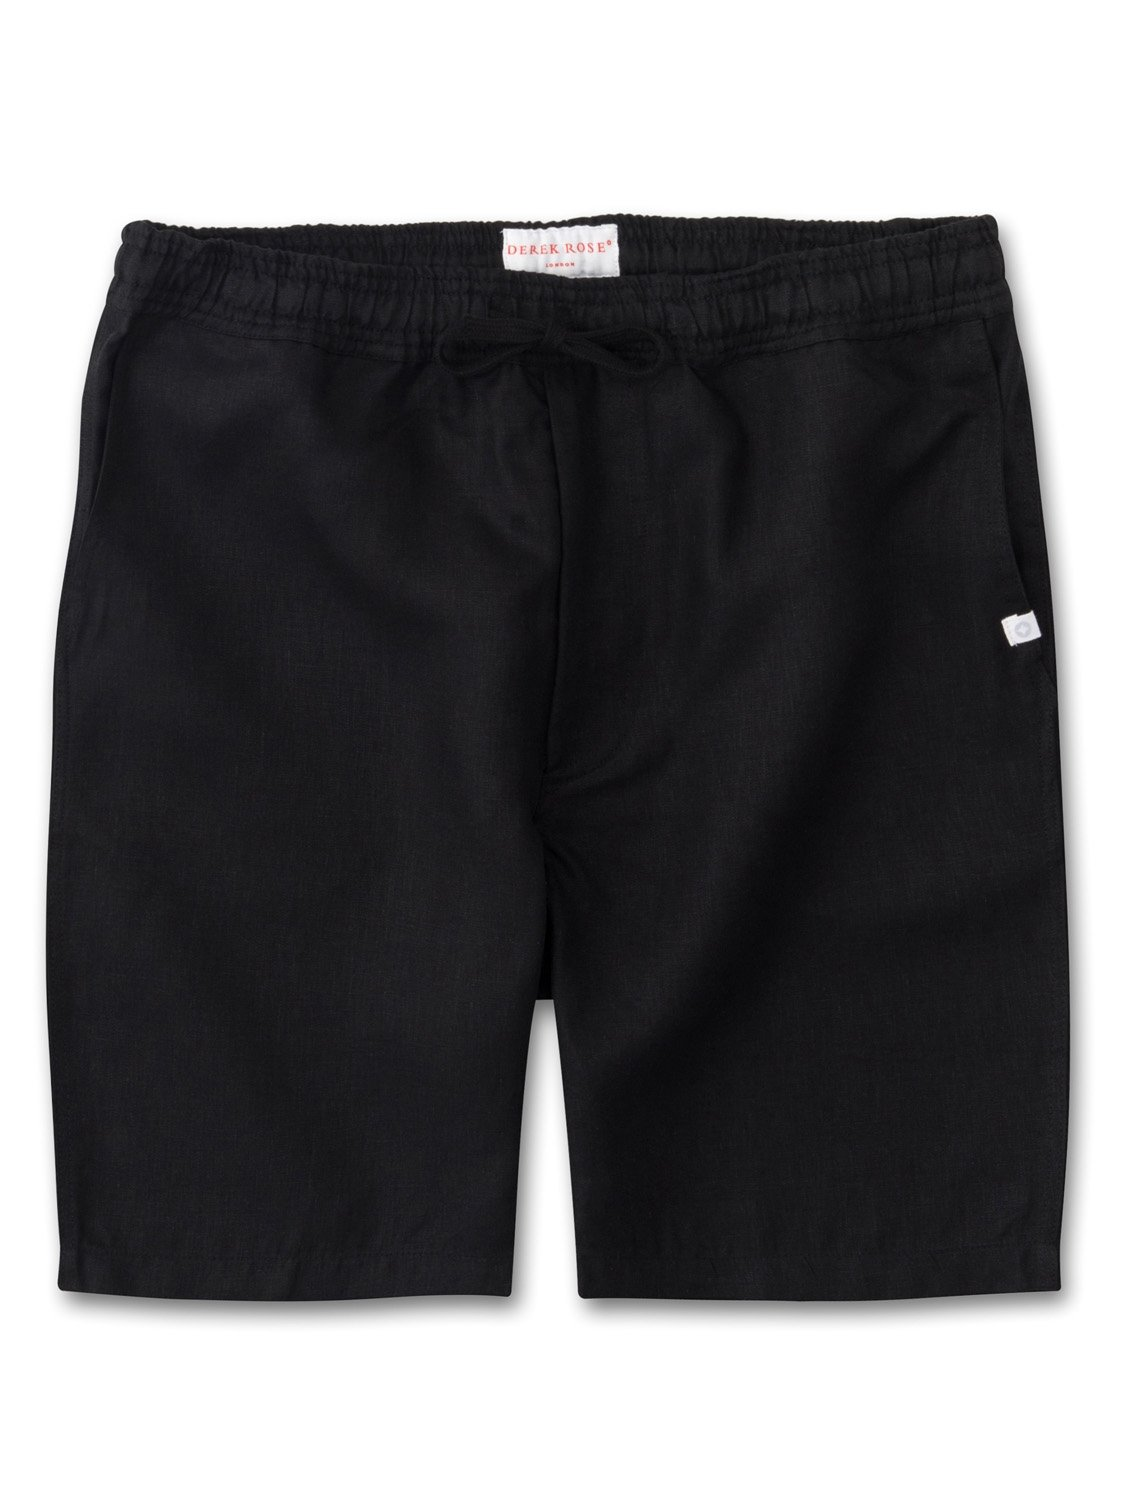 Men's Linen Shorts Sydney Linen Black